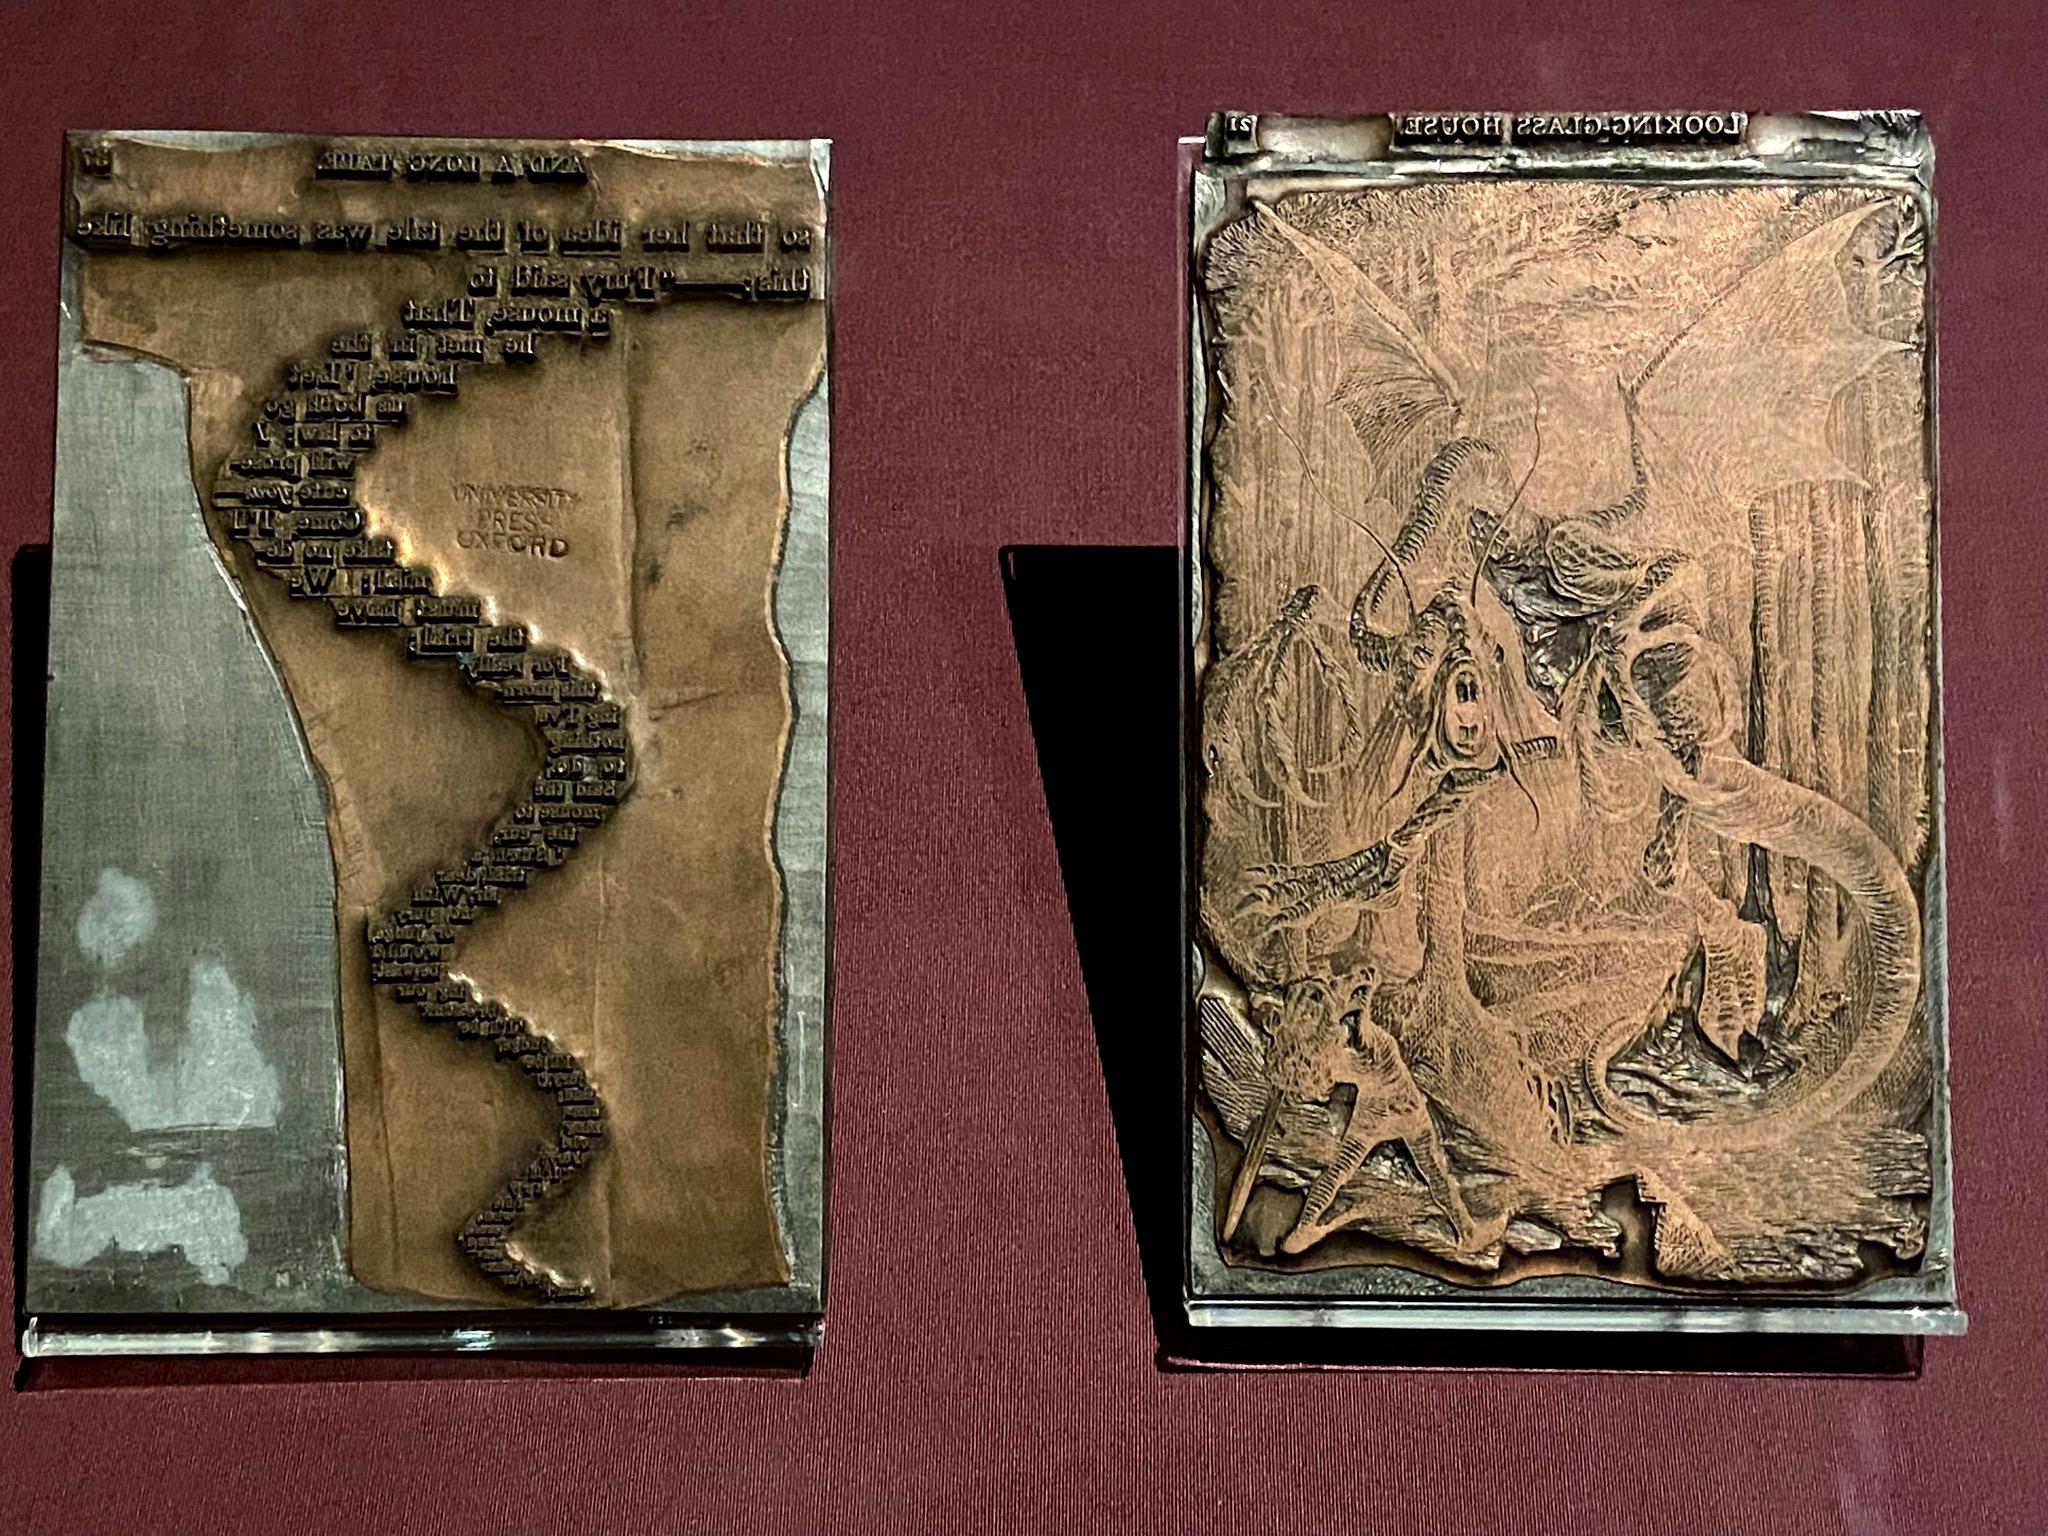 Copper-plated lead printing blocks for 'The Mouse's Tail' and the Jabberwock